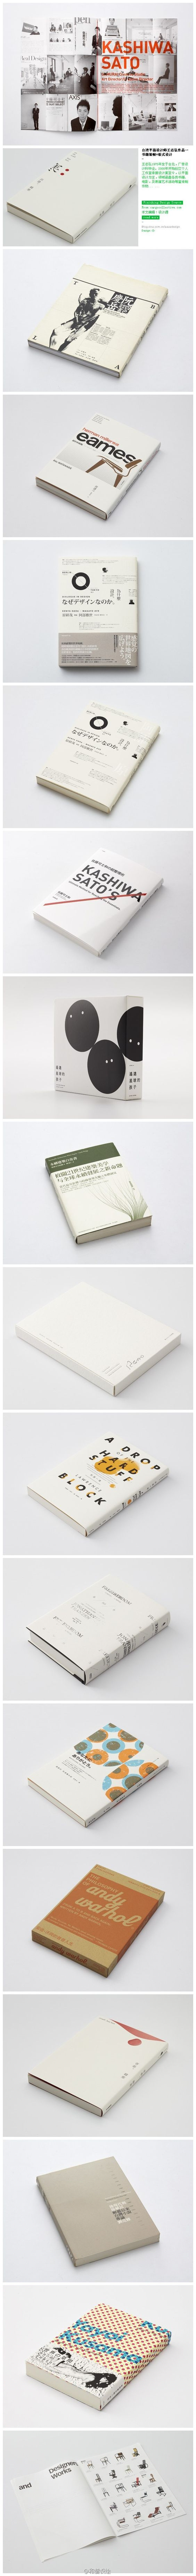 i have one of those books! very cool design with nice paper and print